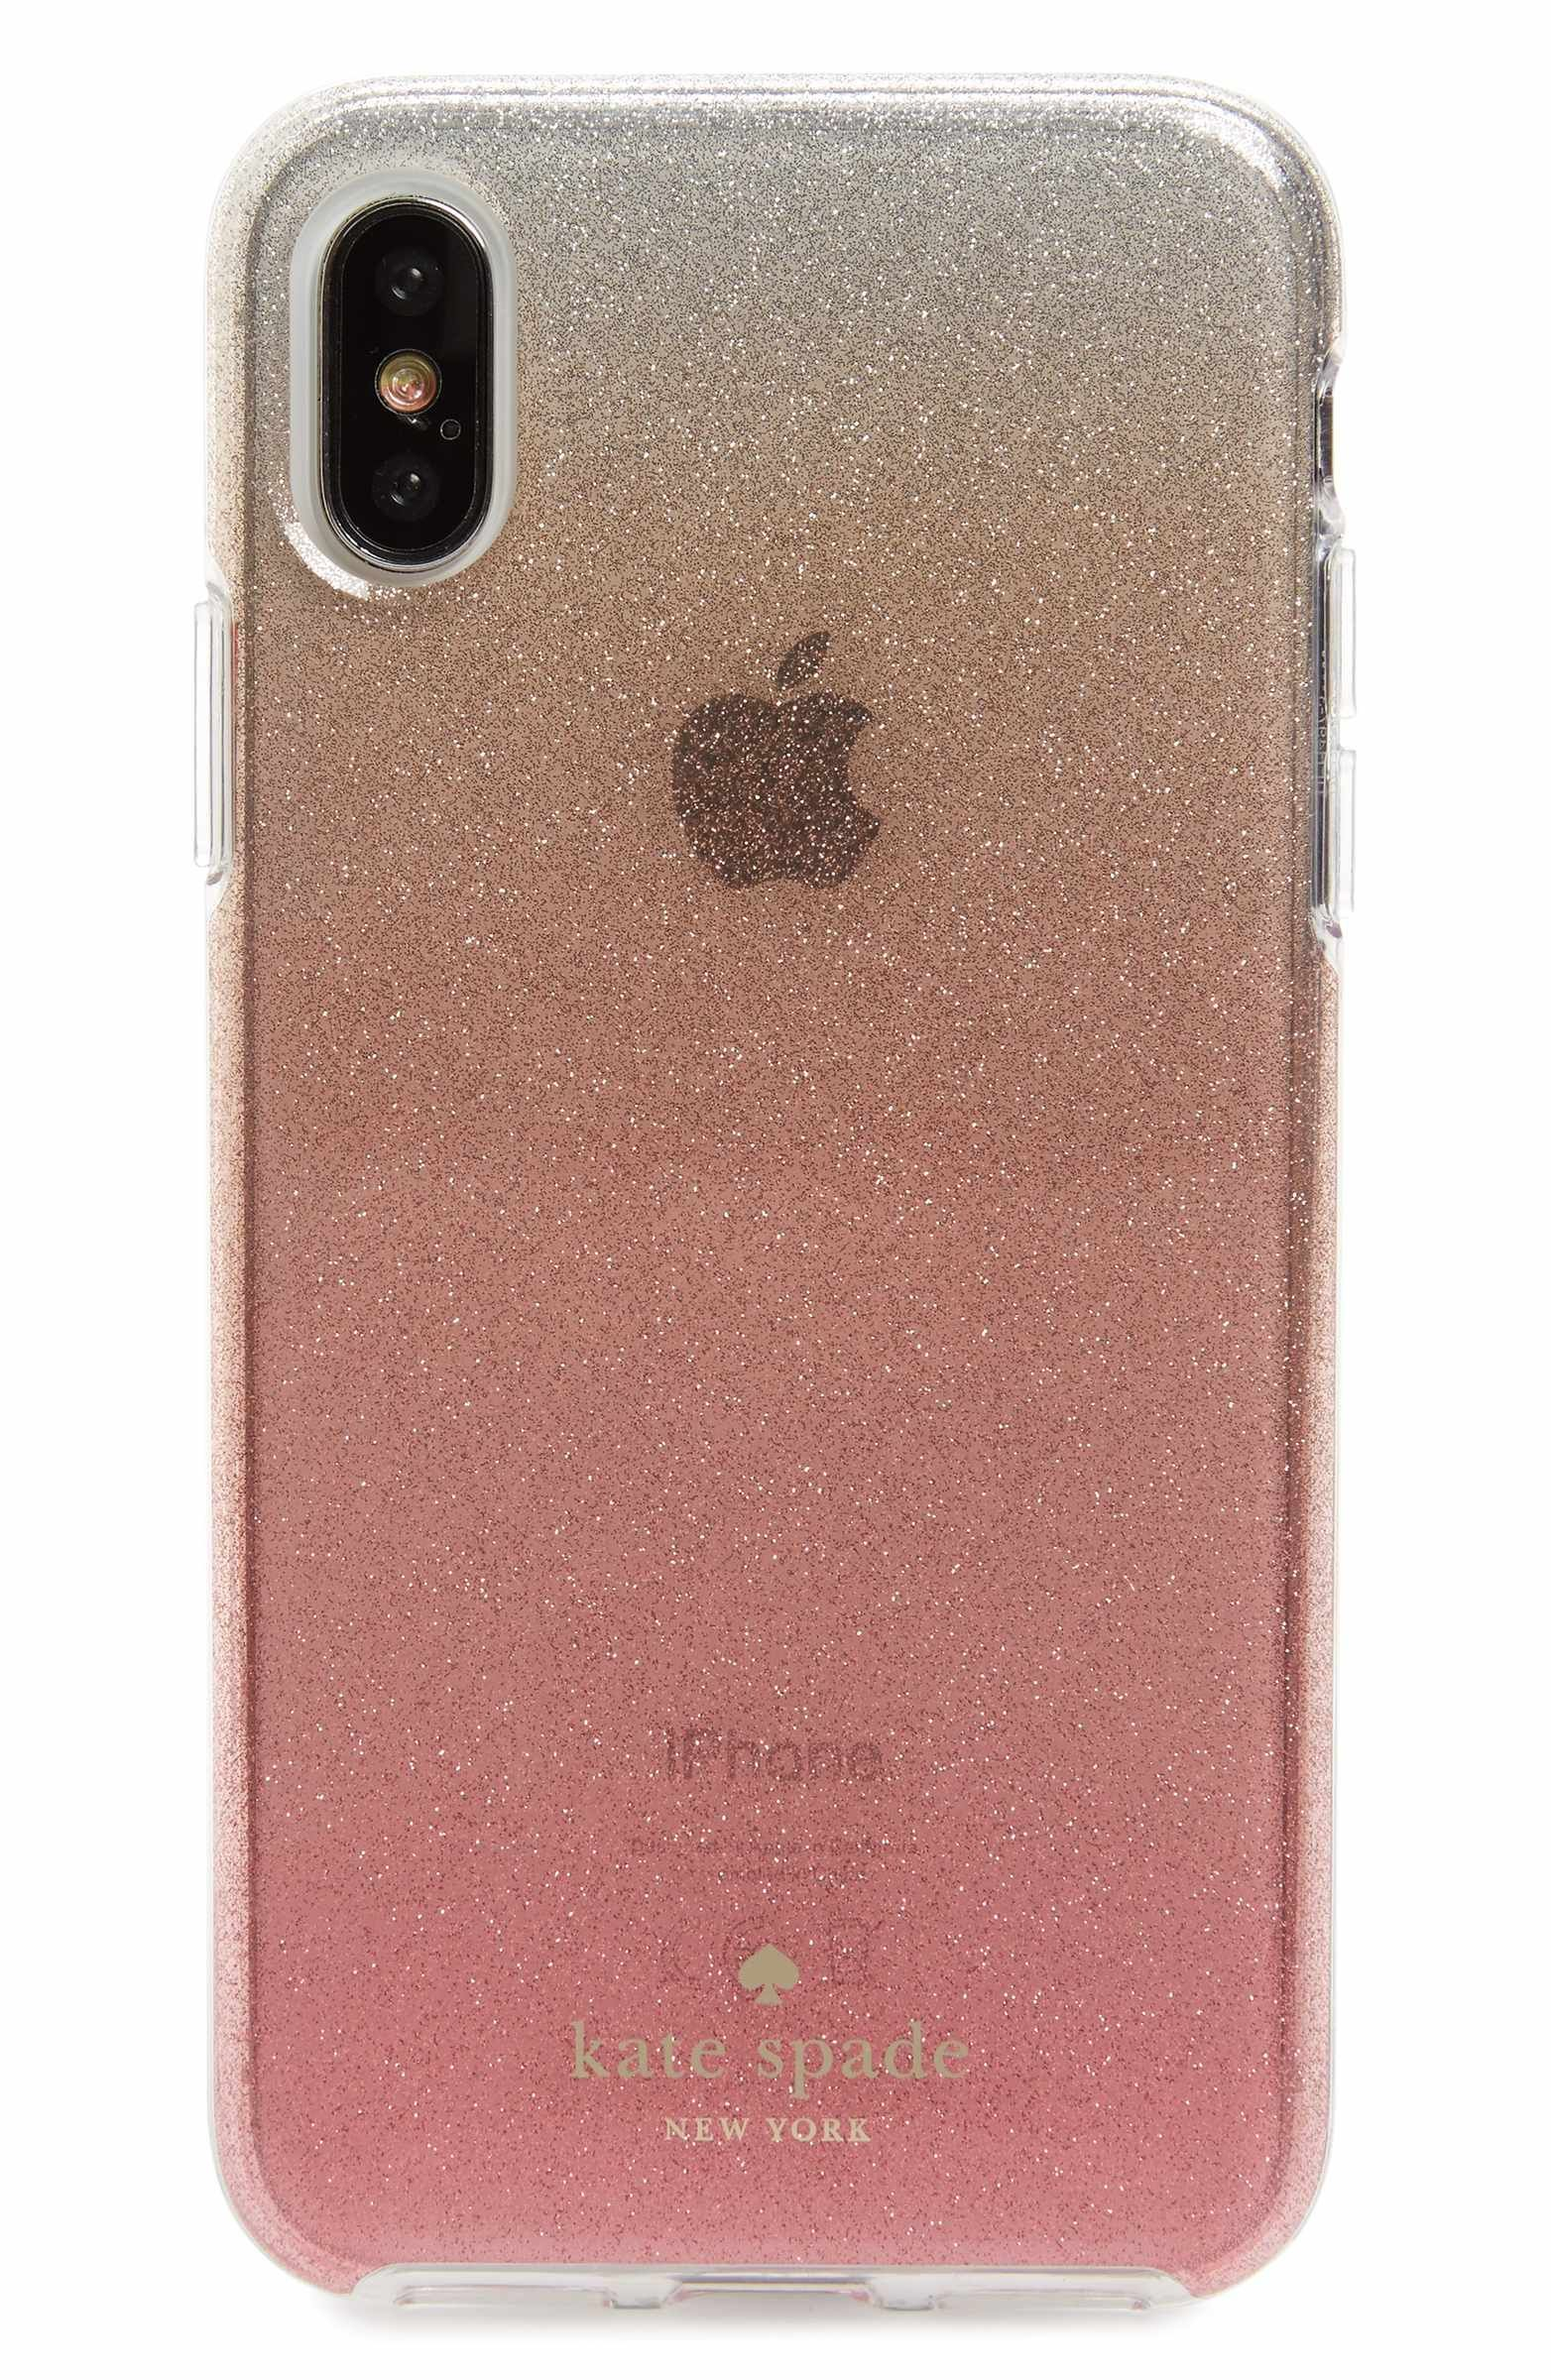 huge discount ca65b 88955 kate spade new york ombré glitter iPhone X case | Rose Gold Love ...